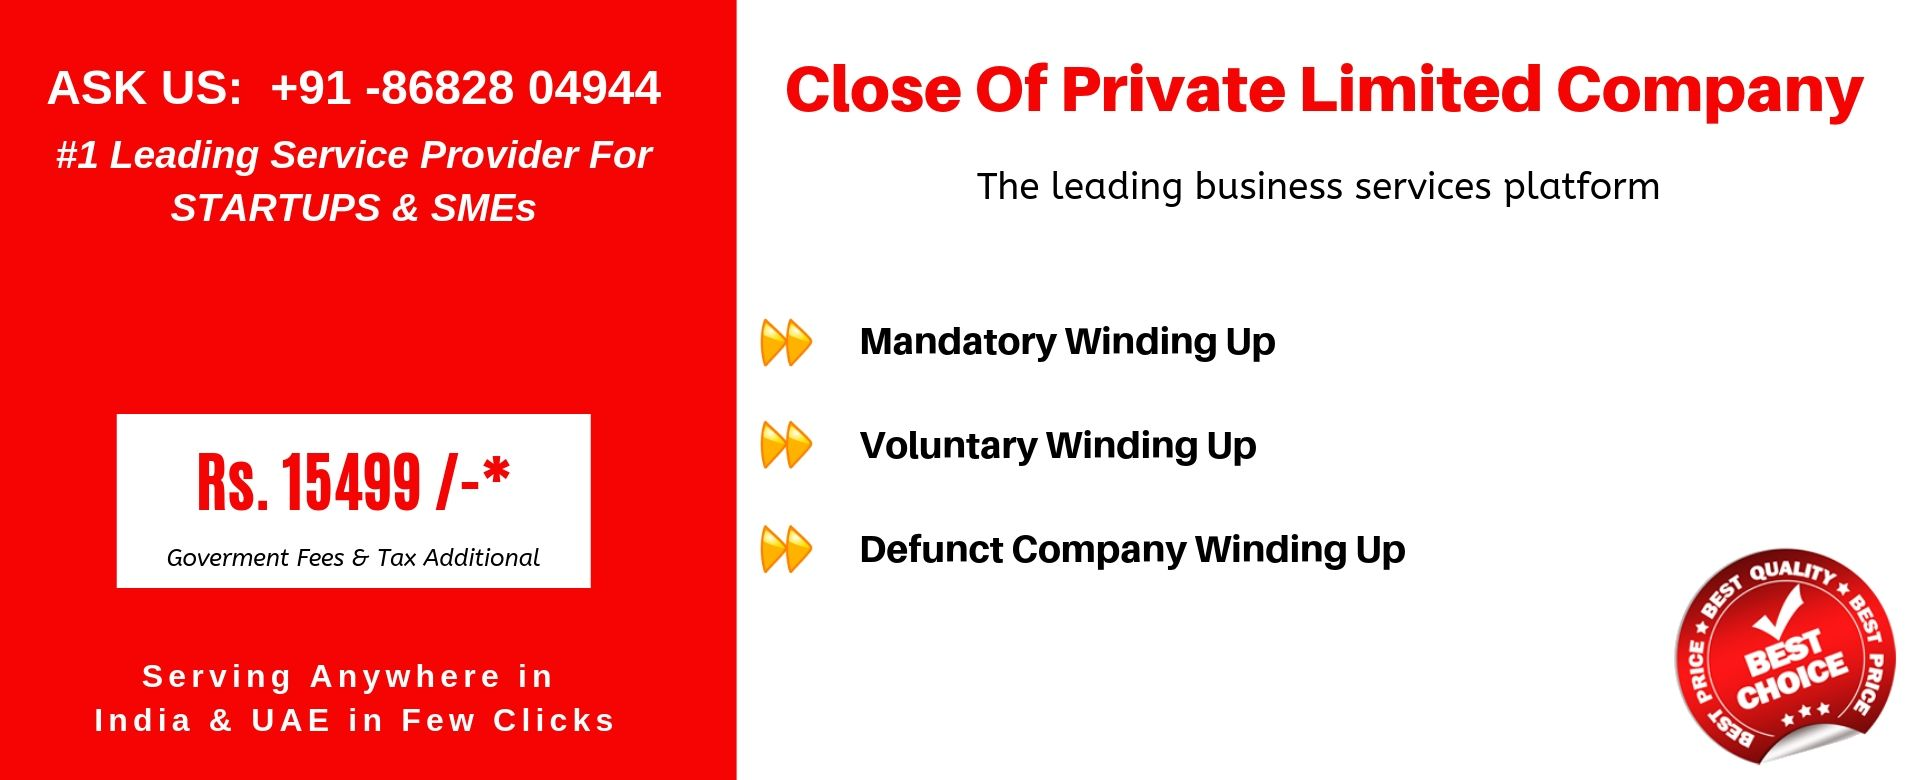 closure of private limited company india